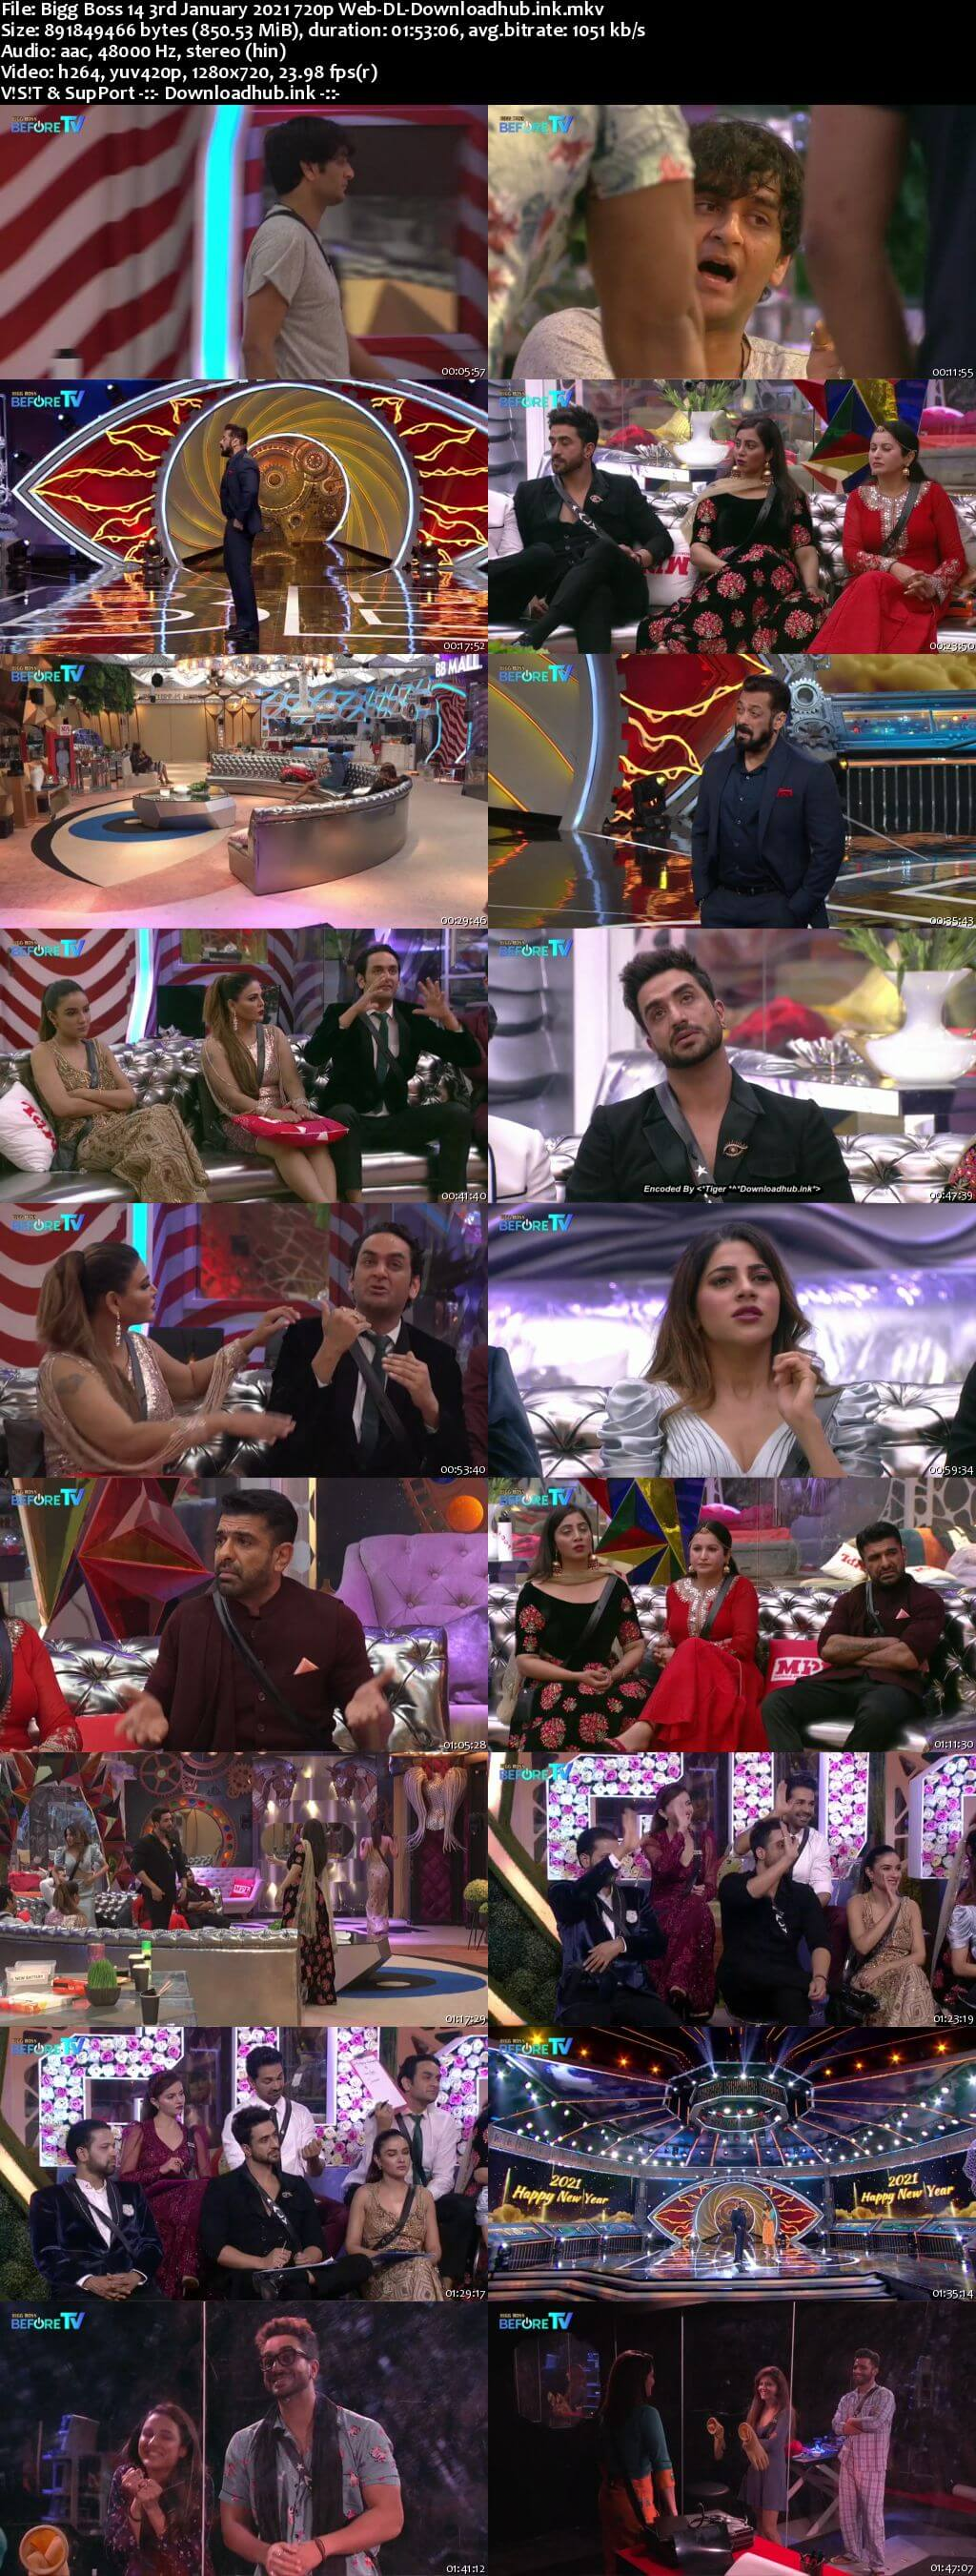 Bigg Boss 14 3rd January 2021 Episode 92 720p 480p Web-DL